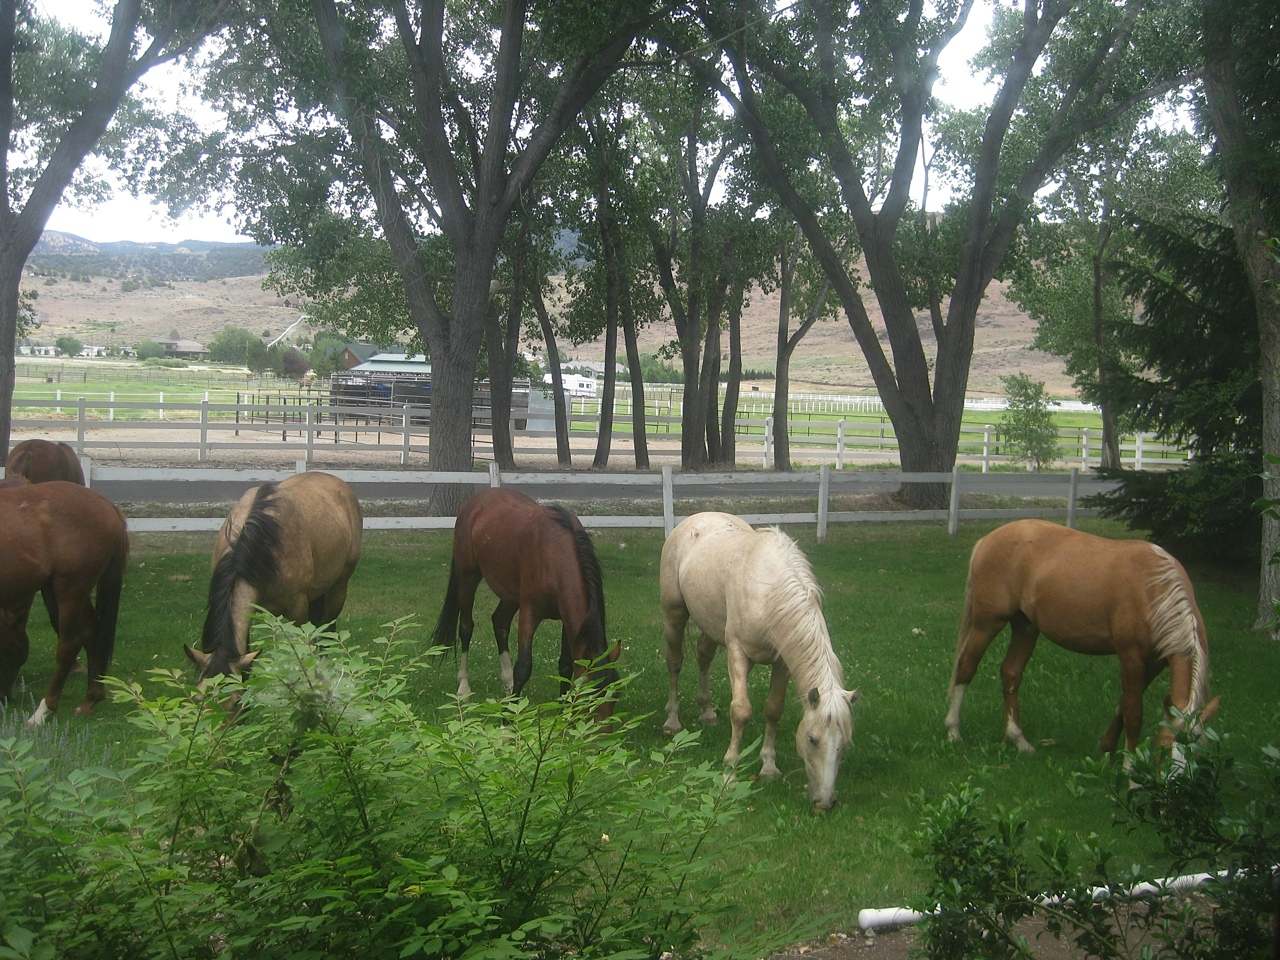 Please consider these guys!!!  MARCH BUCKET FUND:  RHODES ROAD BACHELOR BAND OF 8 WILD HORSES PLUS ONE LONE STALLION! - CAN WE HELP THEM GET OUT OF JAIL?!  THEIR townspeople are gathering resources to house, feed and gentle them!